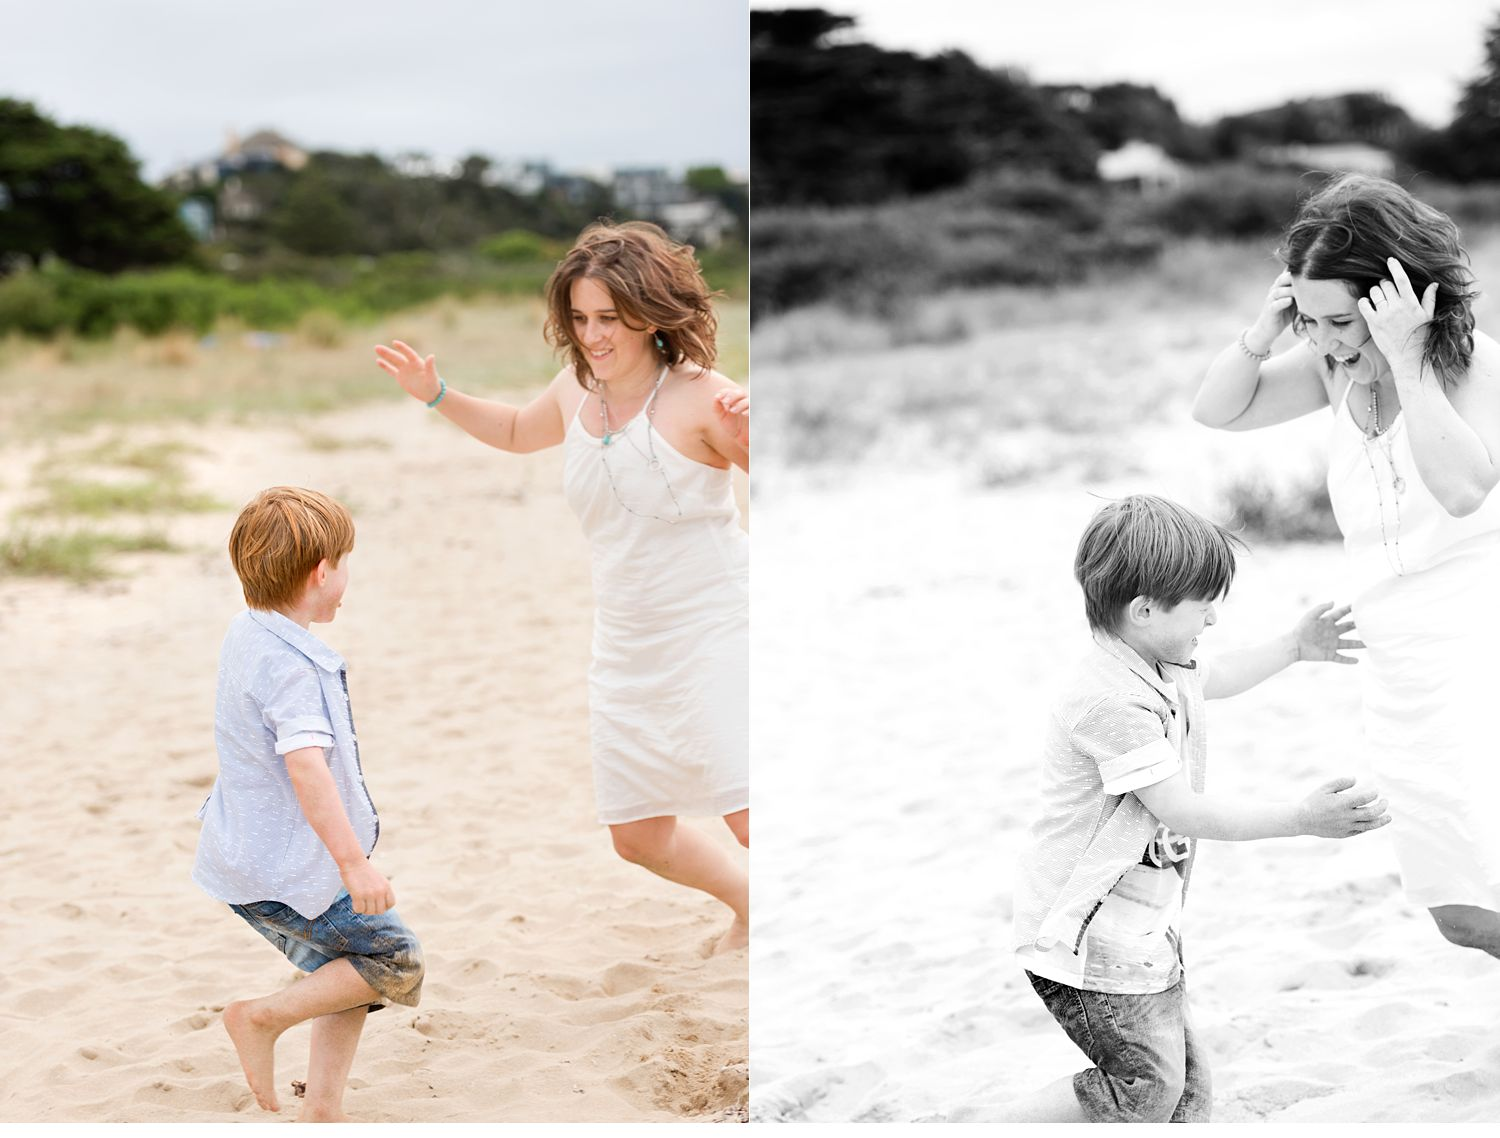 True-connections-family-photography-melbourne-australia.jpg